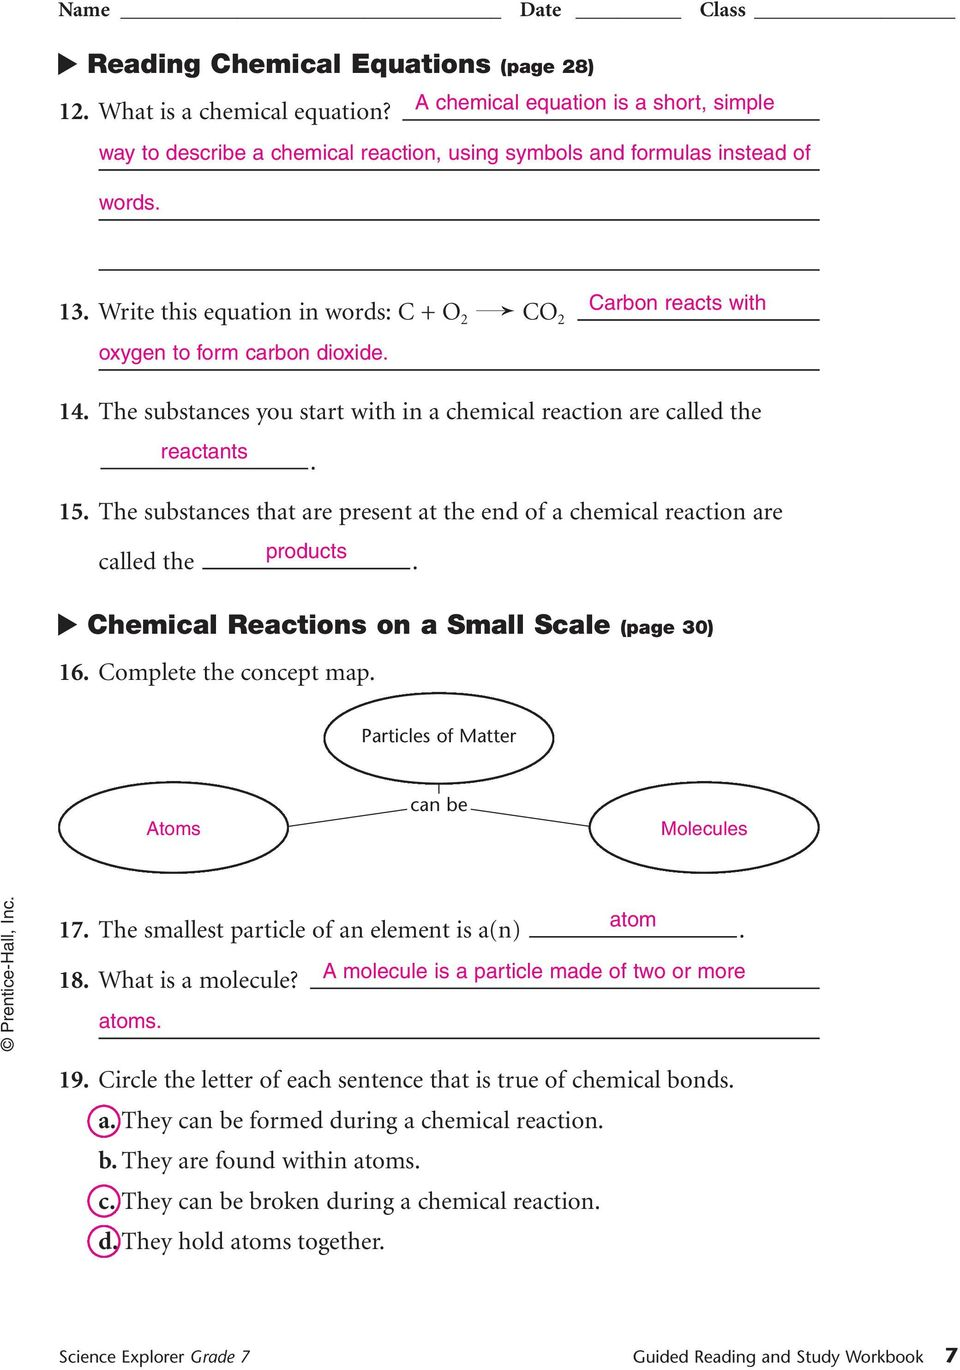 ... Guided Reading and Study Workbook 7. carbon dioxide 14 The substances  you start with in a chemical reaction are called the reactants